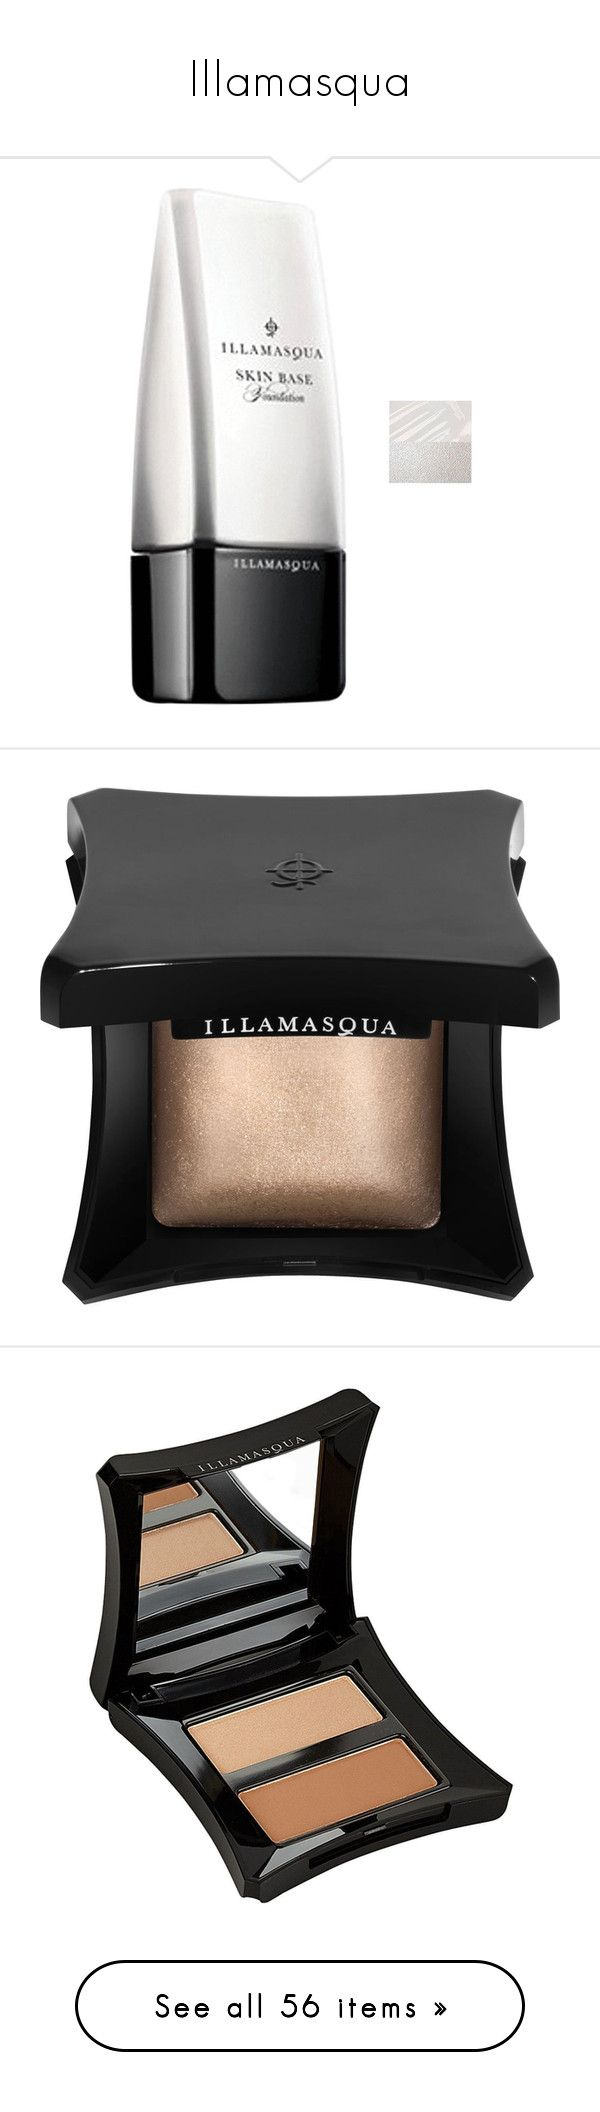 """Illamasqua"" by tina-teena on Polyvore featuring beauty products, makeup, face makeup, foundation, illamasqua foundation, illamasqua, liquid concealer, face powder, beauty and fillers"